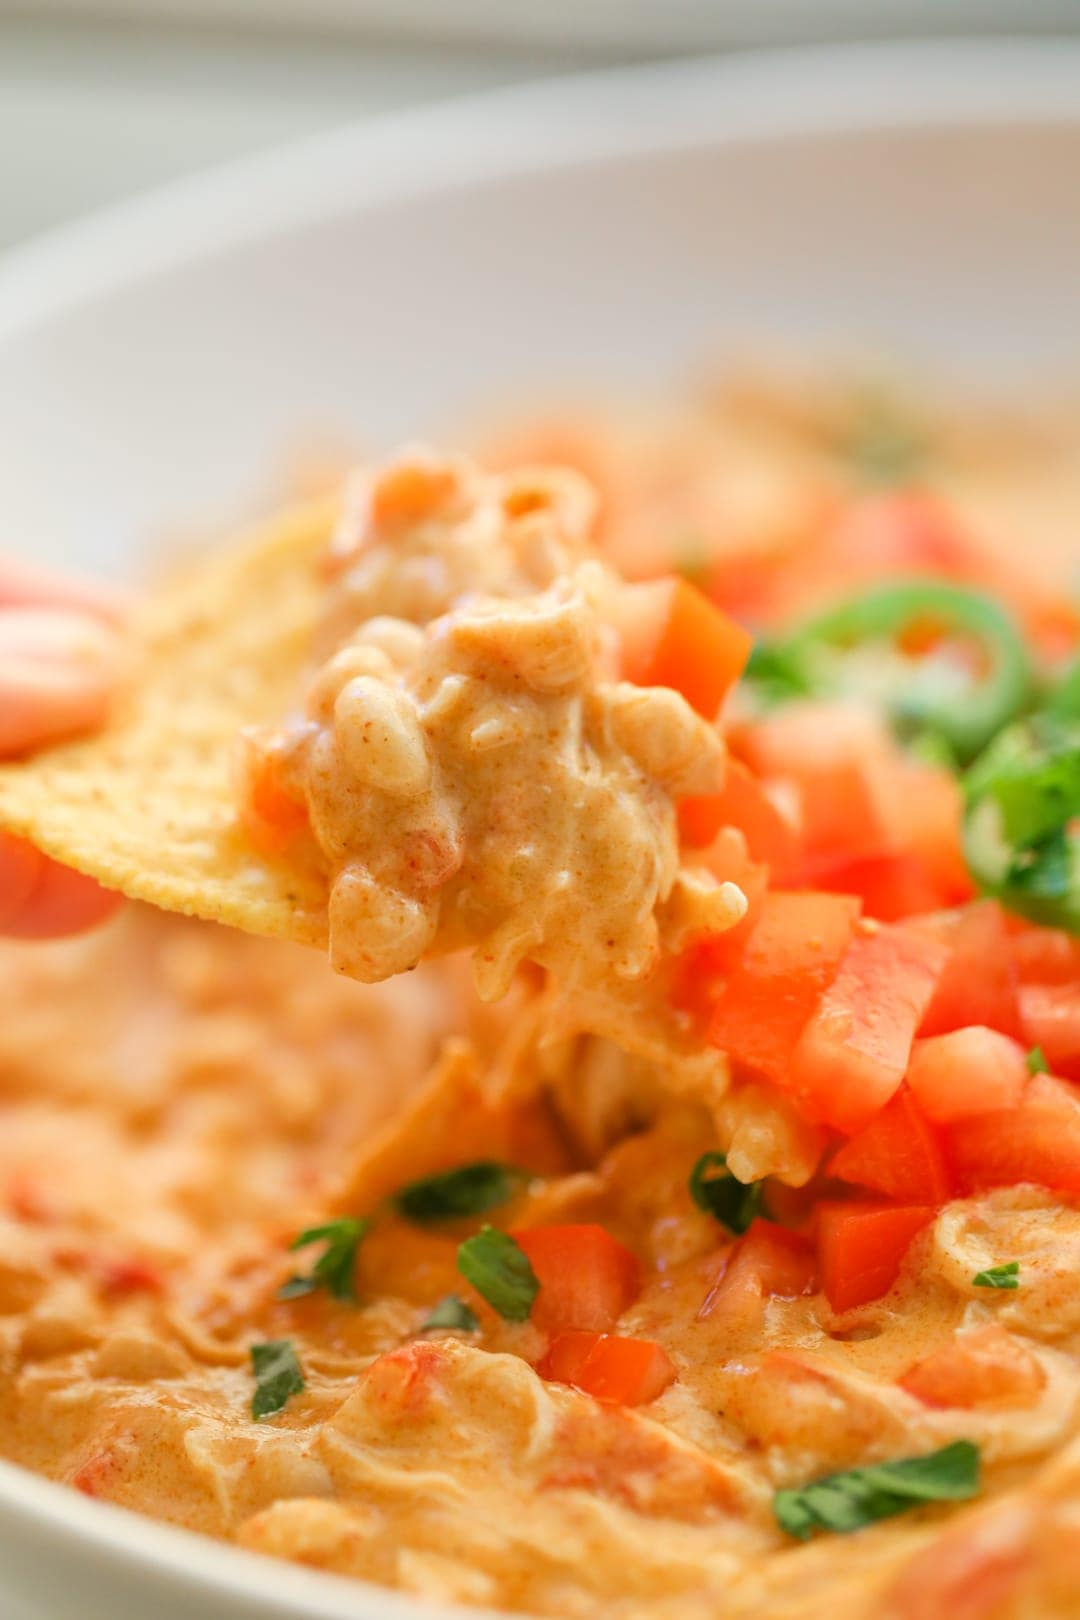 Chicken Nacho Dip on a chip